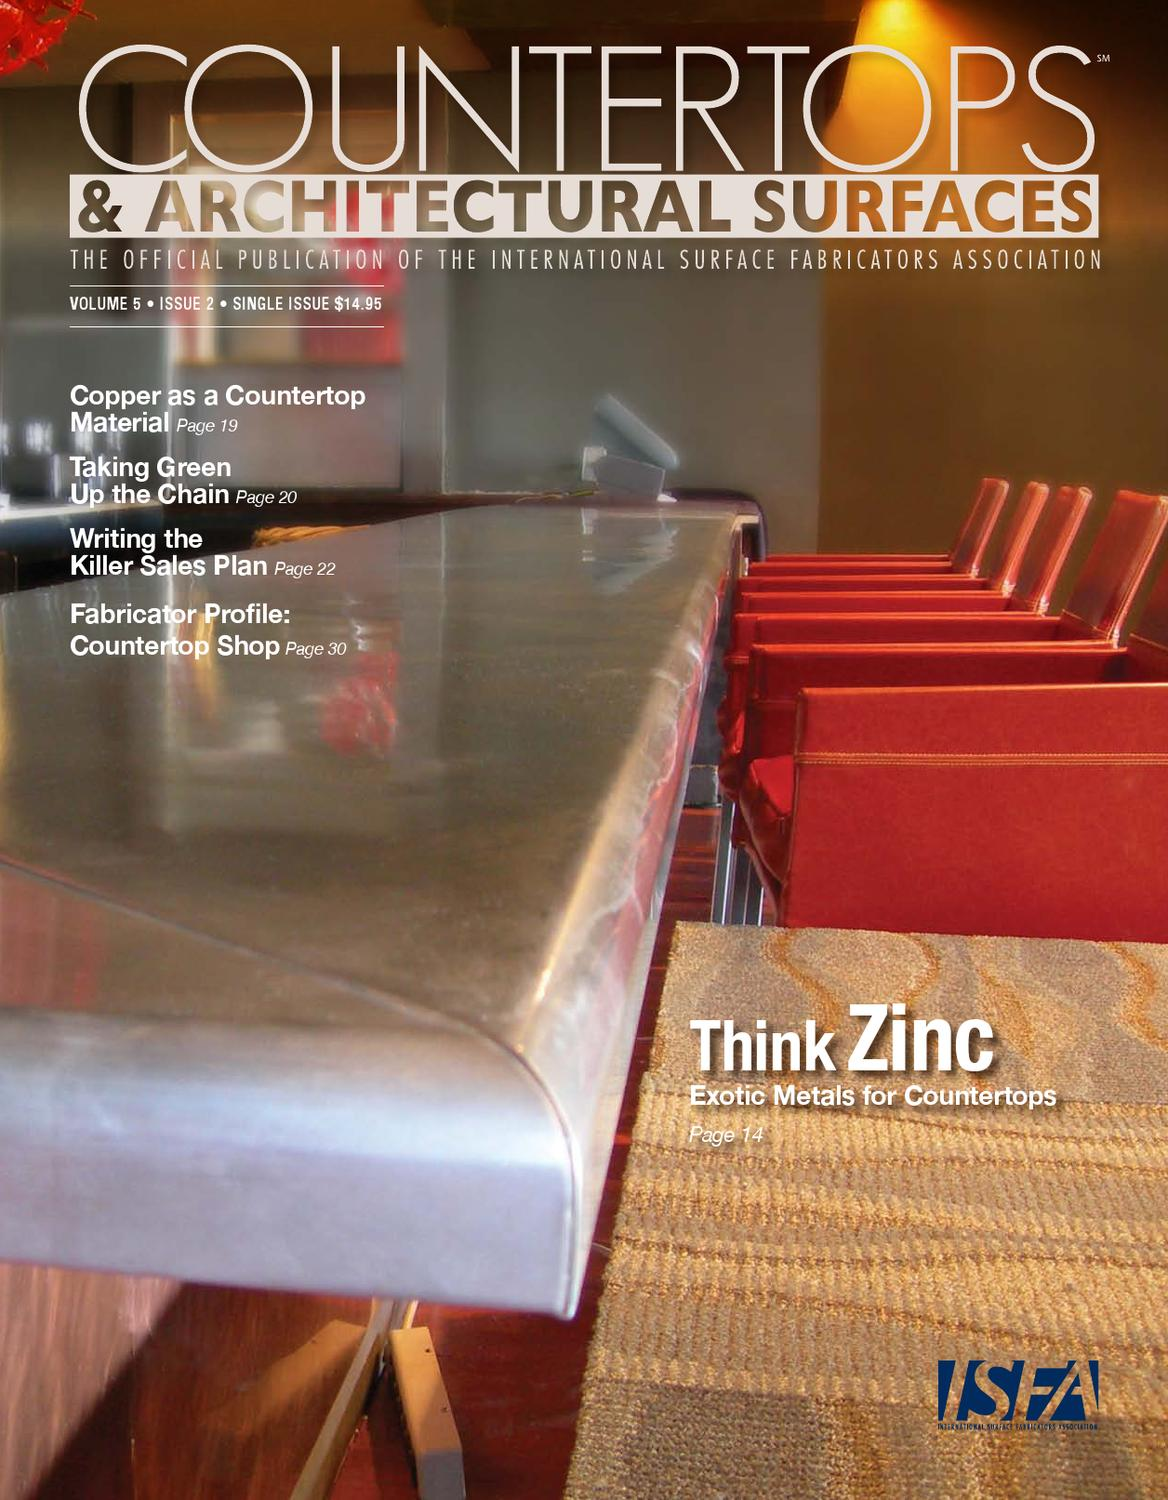 isfa countertops architectural surfaces vol 5 issue 2 by isfa issuu